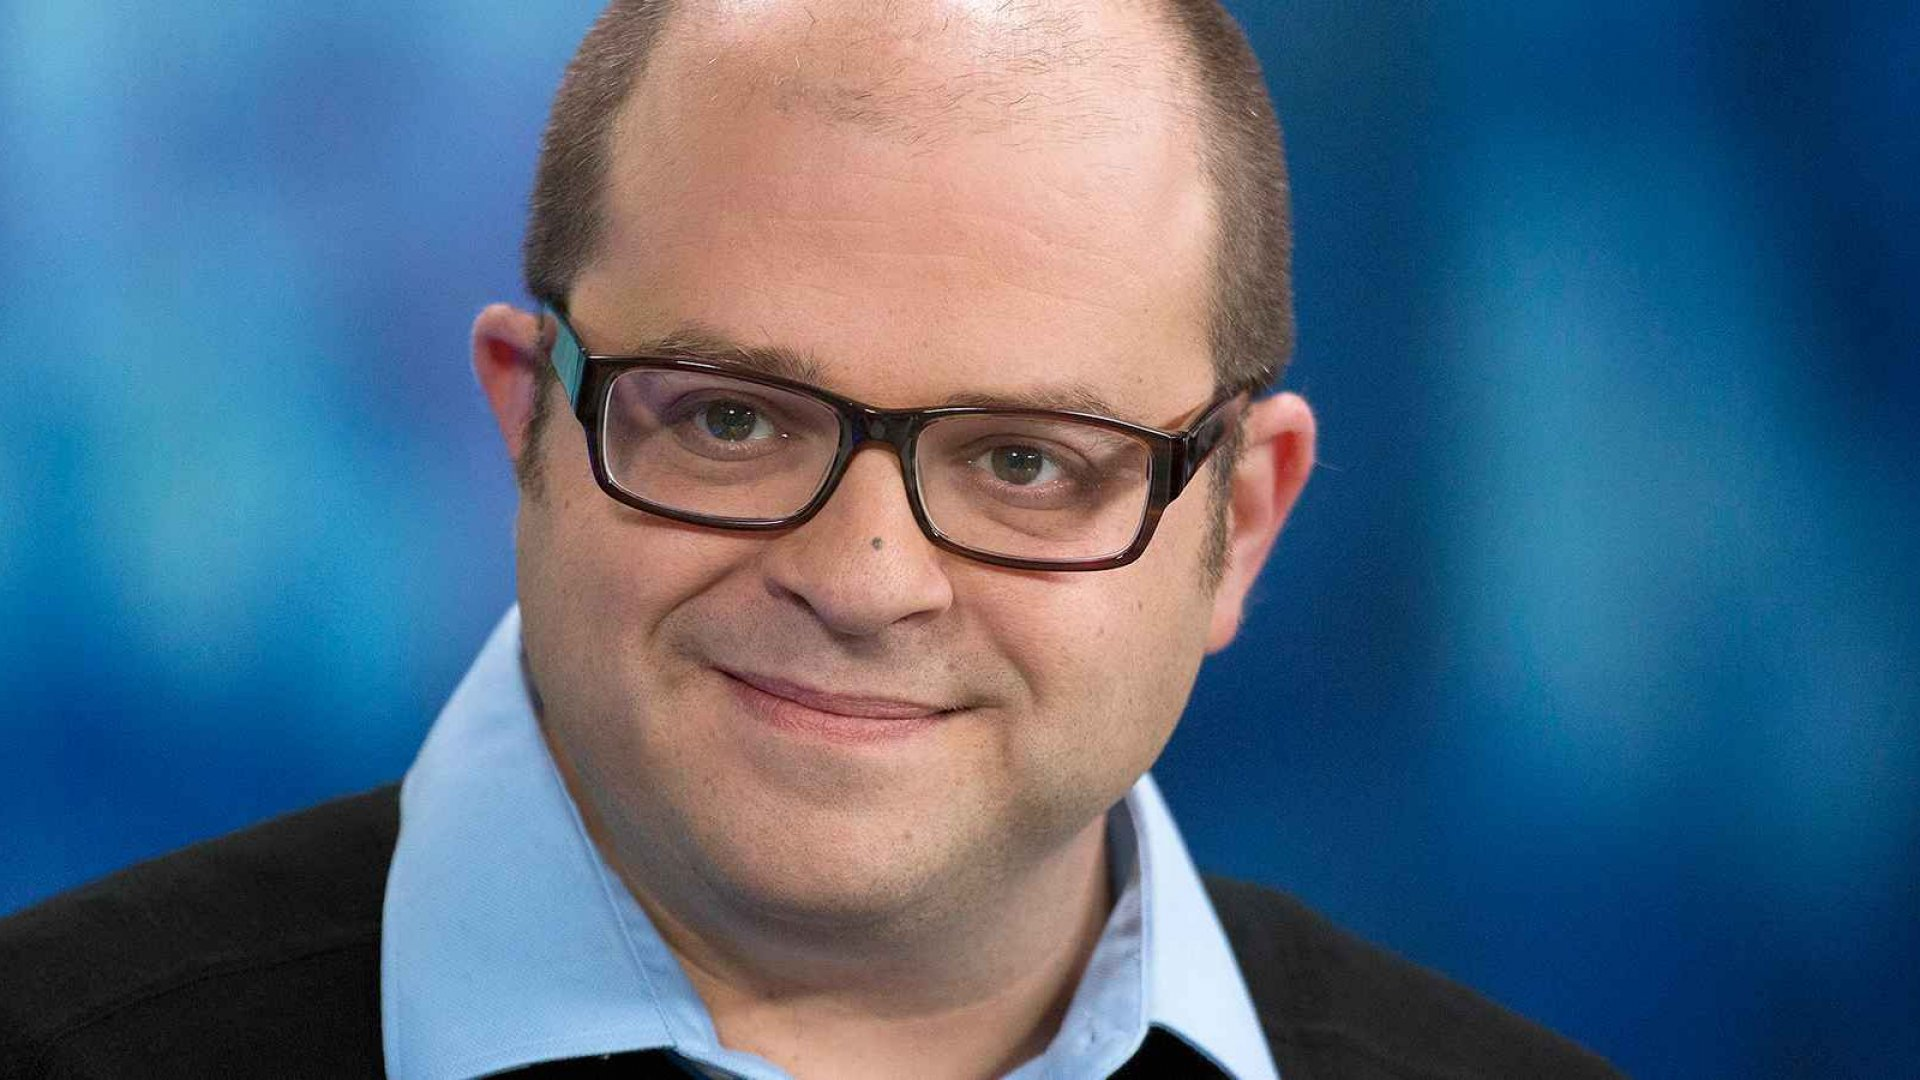 Jeff Lawson, co-founder and chief executive of cloud-based software development company Twilio.